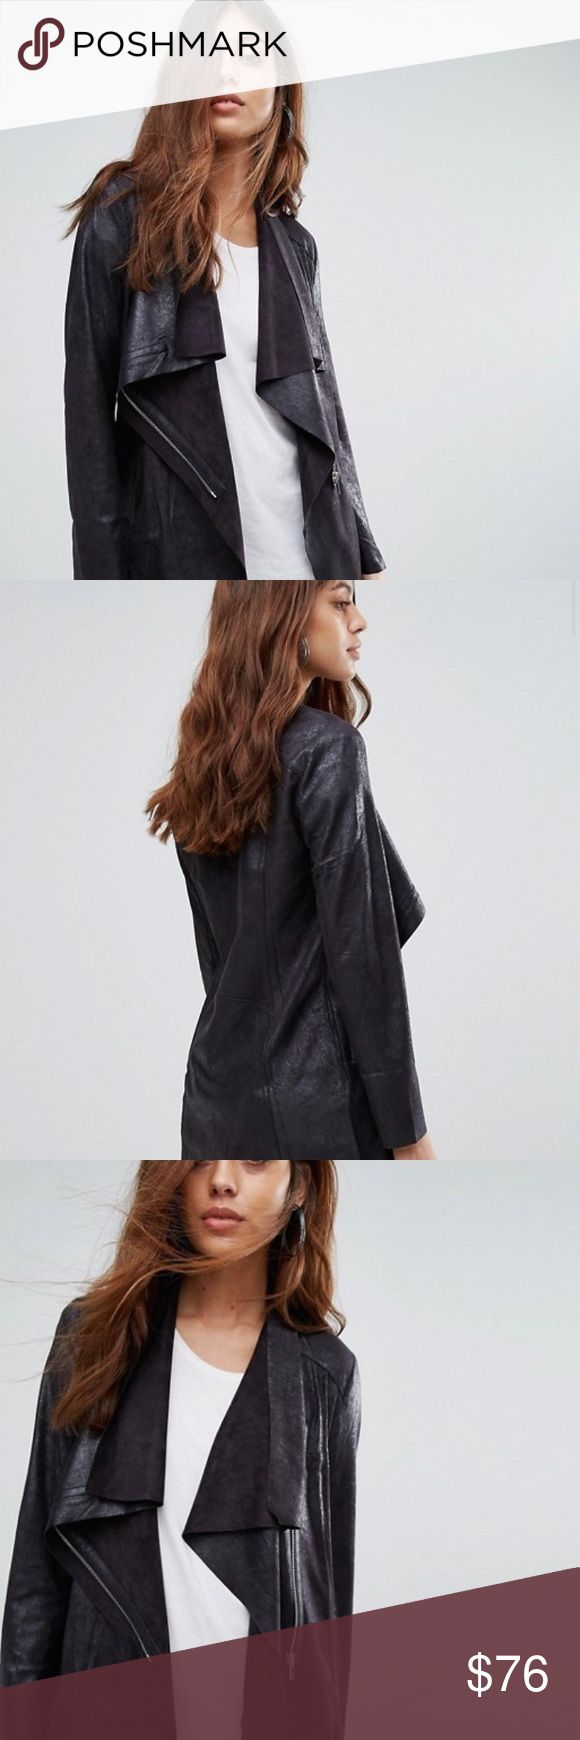 ASOS Mango Waterfall Faux Suede Jacket Jacket by Mango Faux suede Added stretch for comfort Waterfall lapels Asymmetric zip fastening Regular fit - true to size Dry clean 90% Polyester, 10% Elastane Mango Jackets & Coats